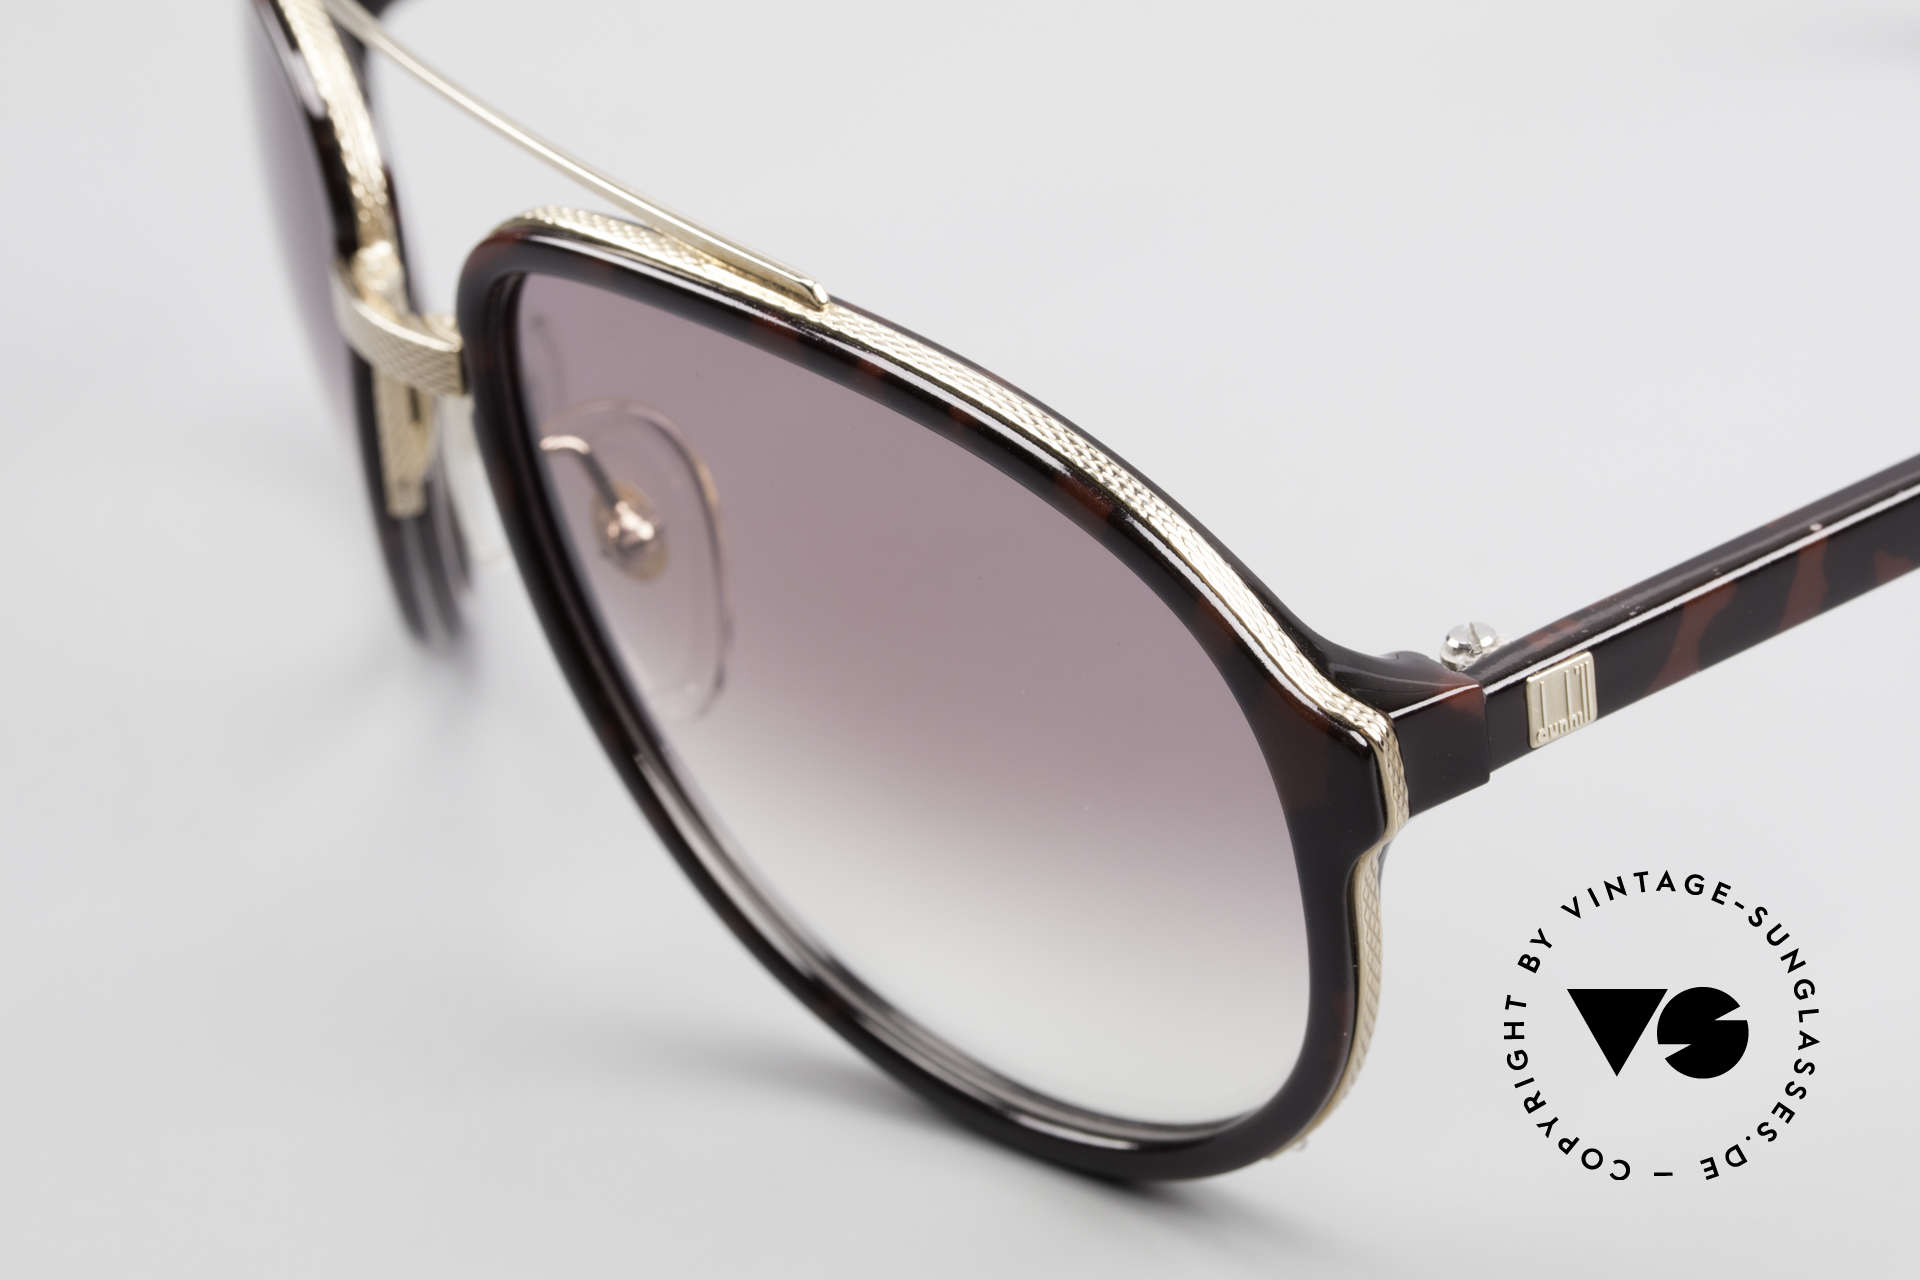 Dunhill 6105 Comfort Fit Luxury Sunglasses, elegant combination of Optyl material and metal, Made for Men